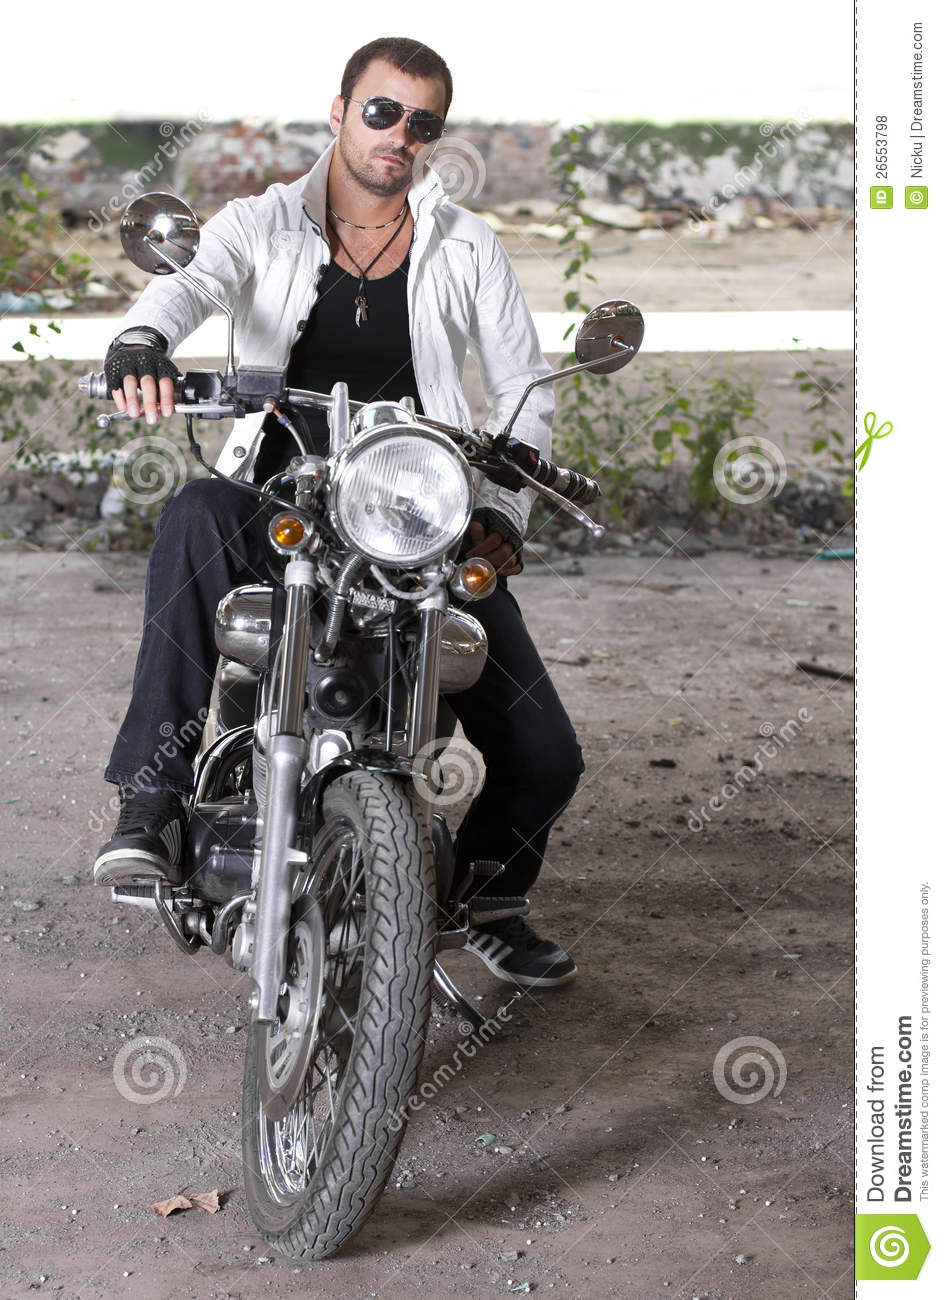 Good looking young man on motorcycle